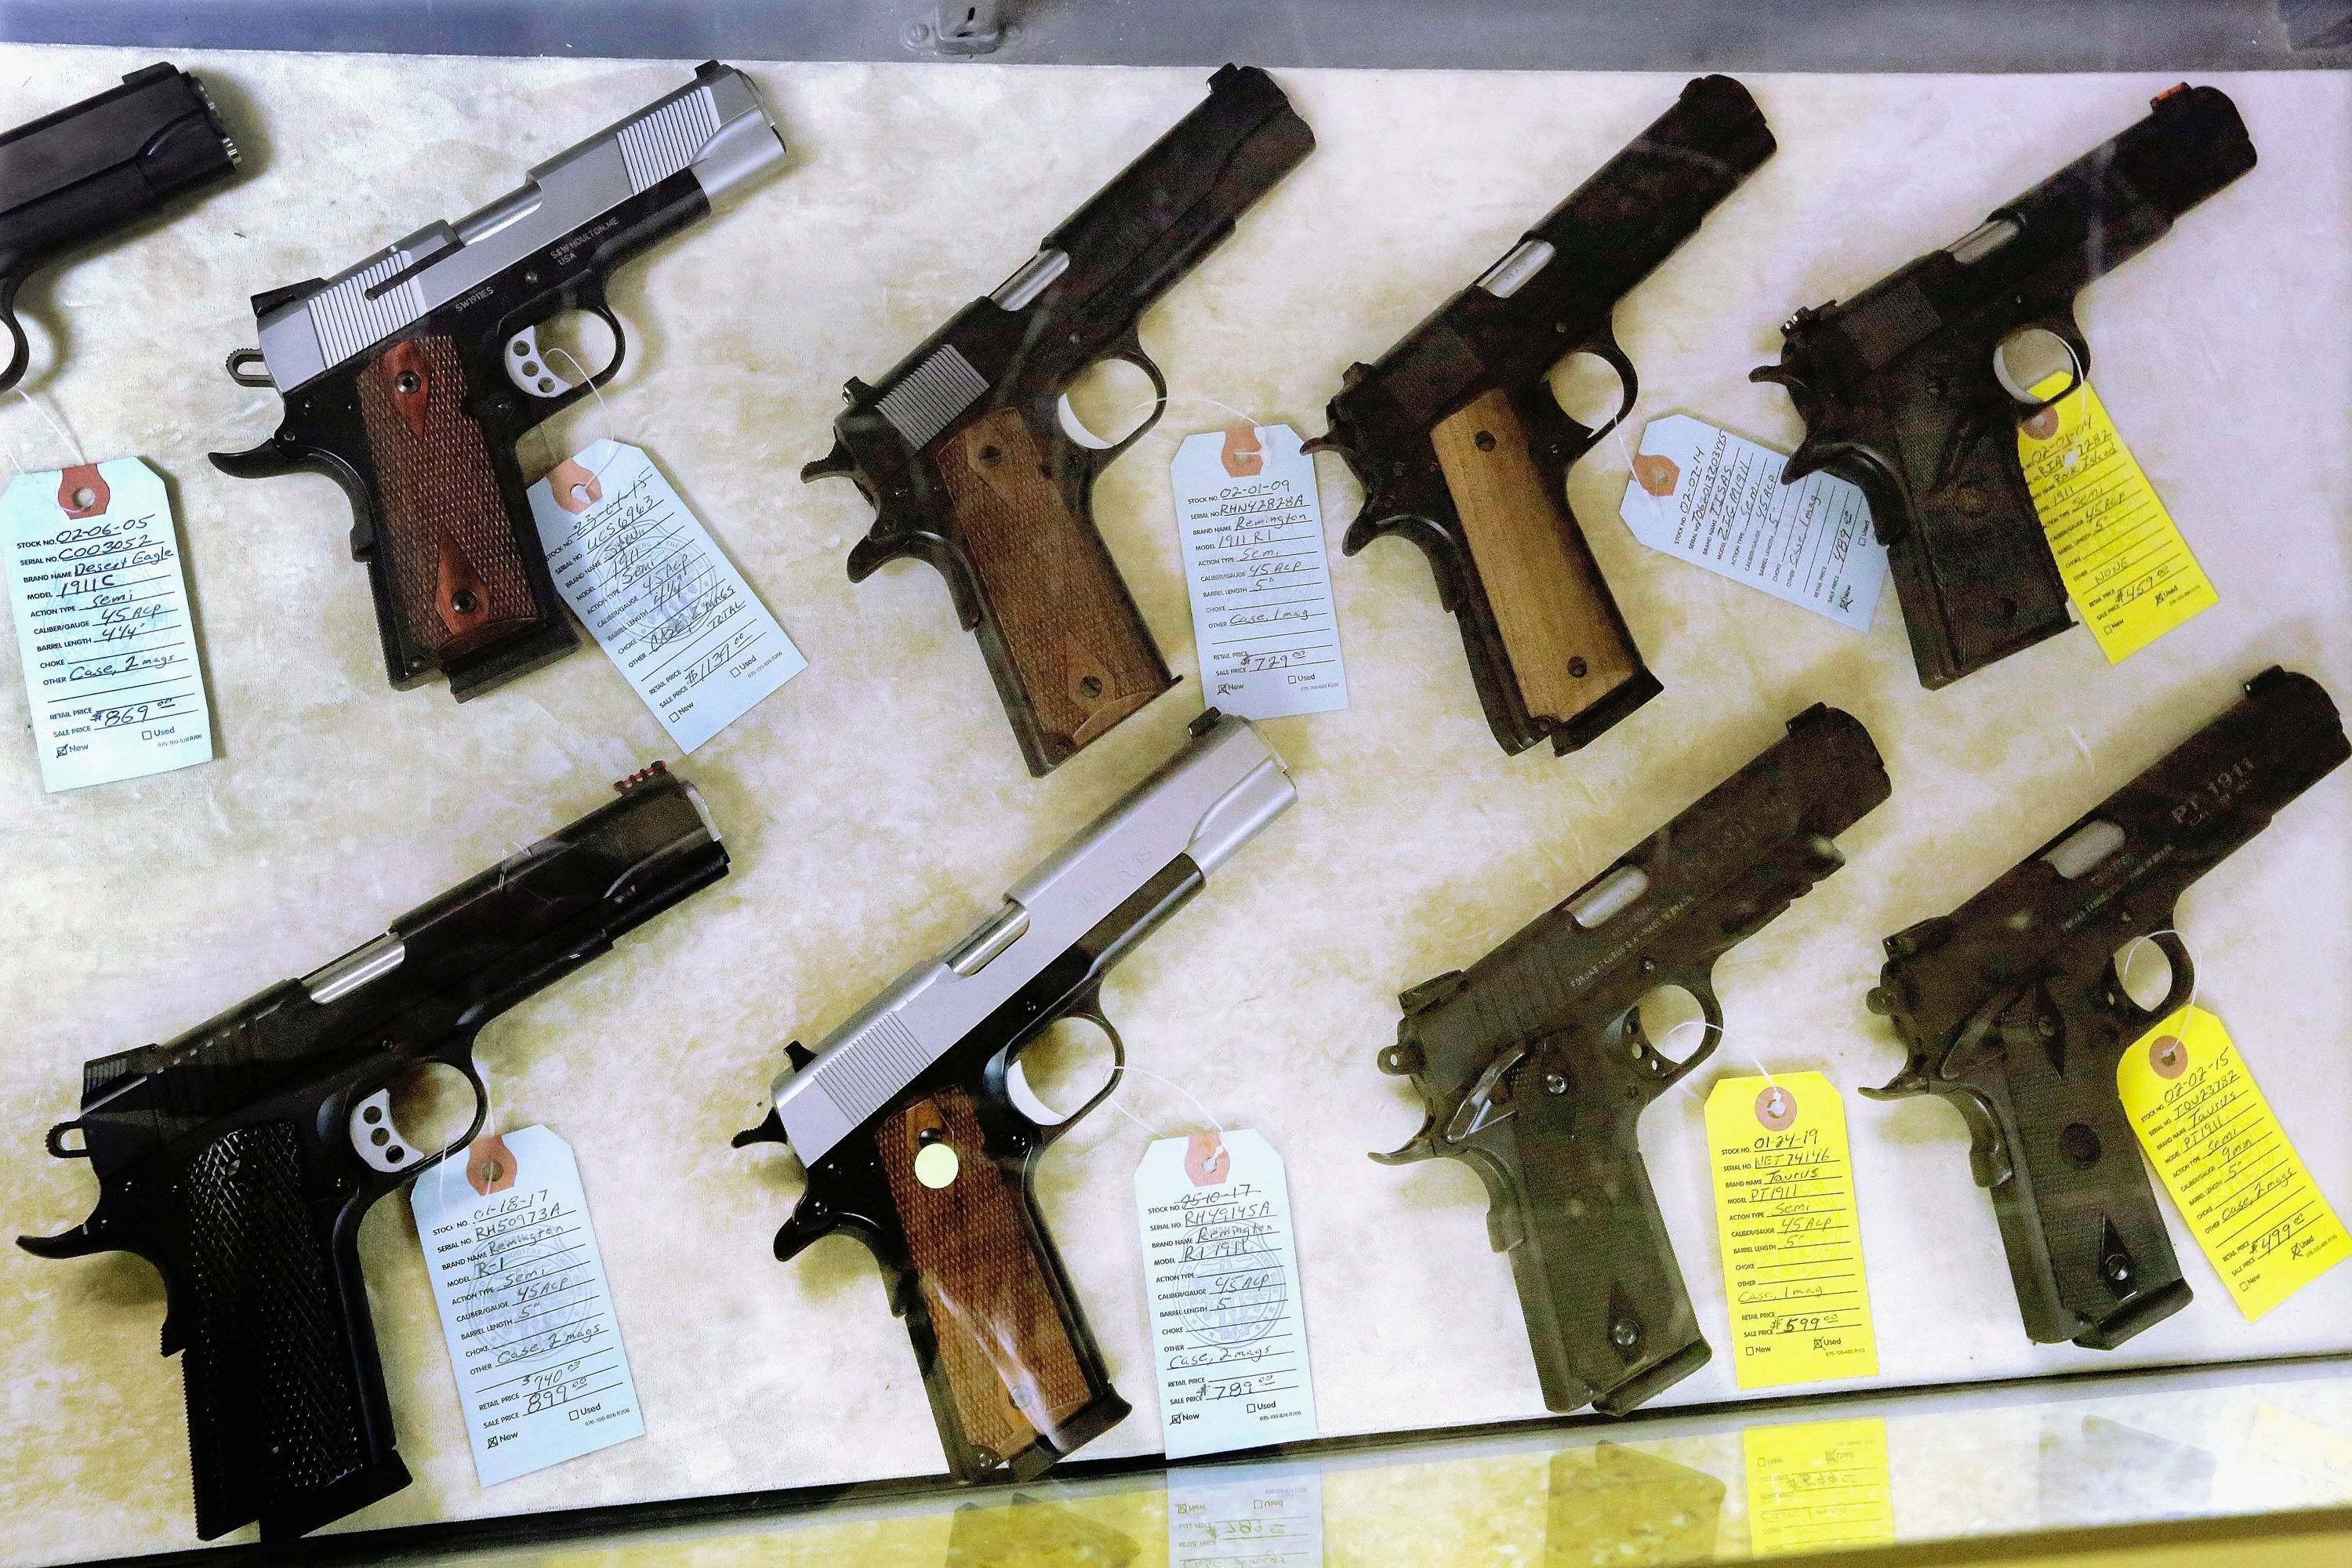 Semiautomatic handguns on display for purchase at Capitol City Arms Supply in Springfield, Ill.